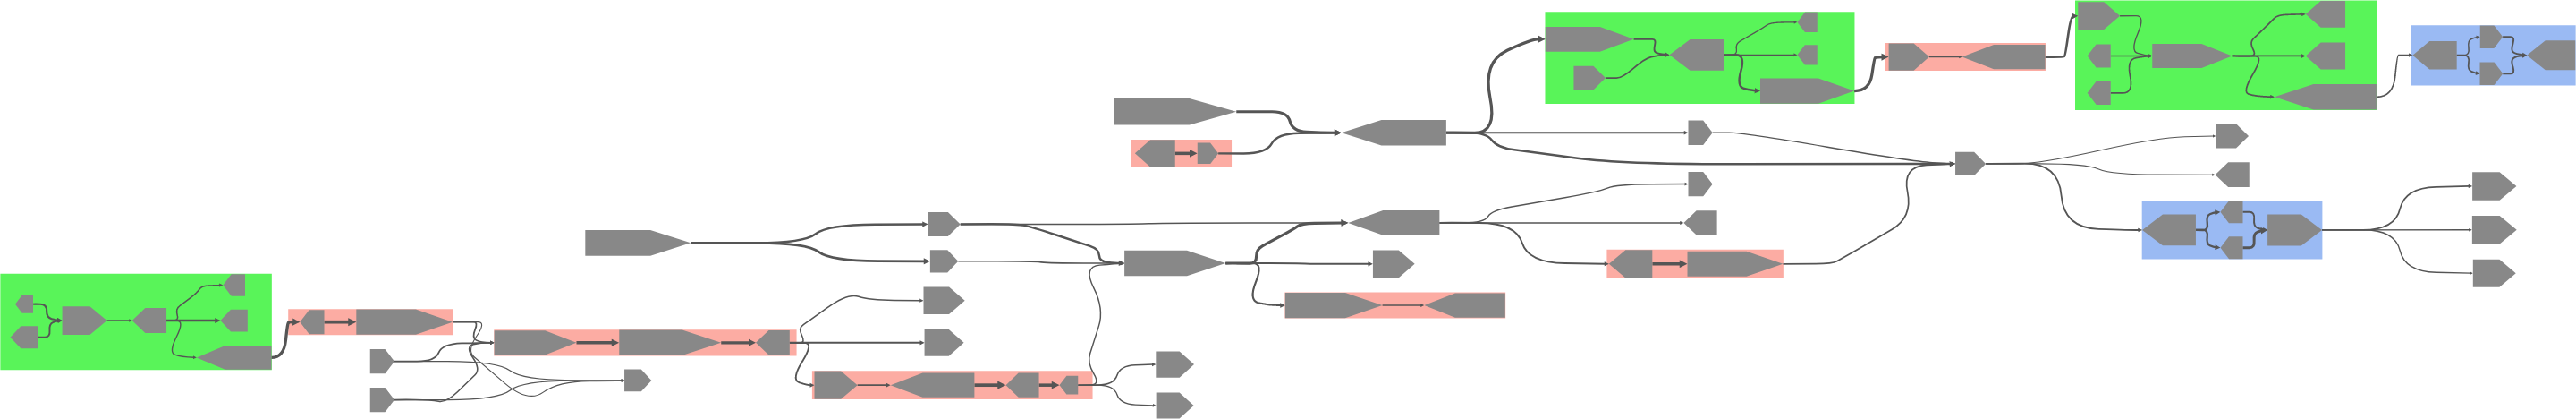 Screenshot of MetagenomeScope's standard mode, showing a region of a biofilm assembly graph